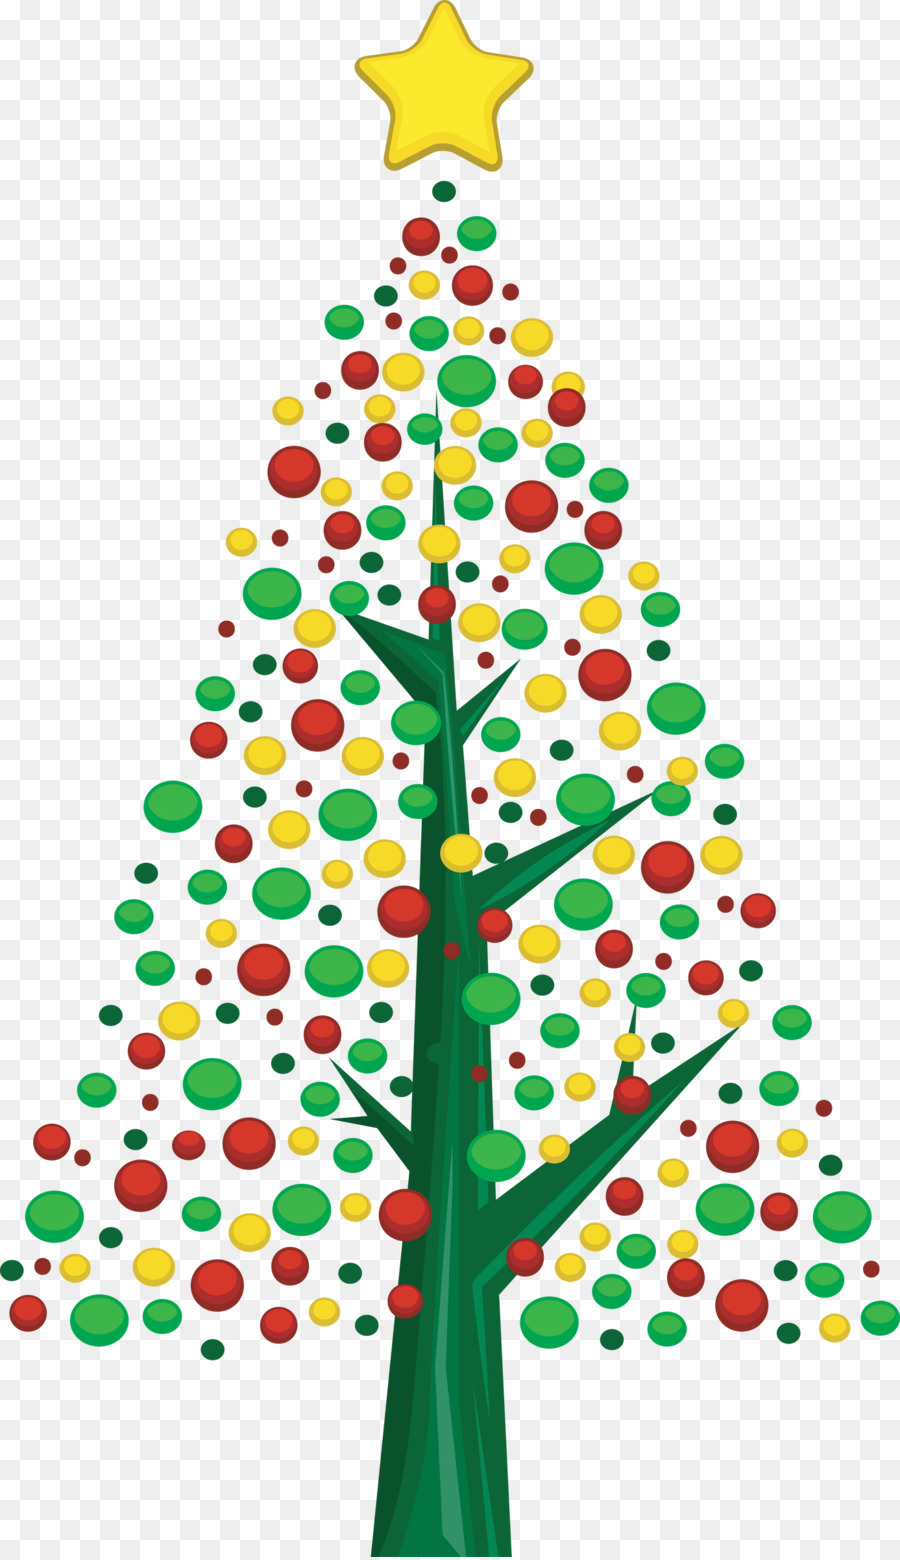 Free christmas symbols clipart graphic library library Christmas Tree Symboltransparent png image & clipart free download graphic library library